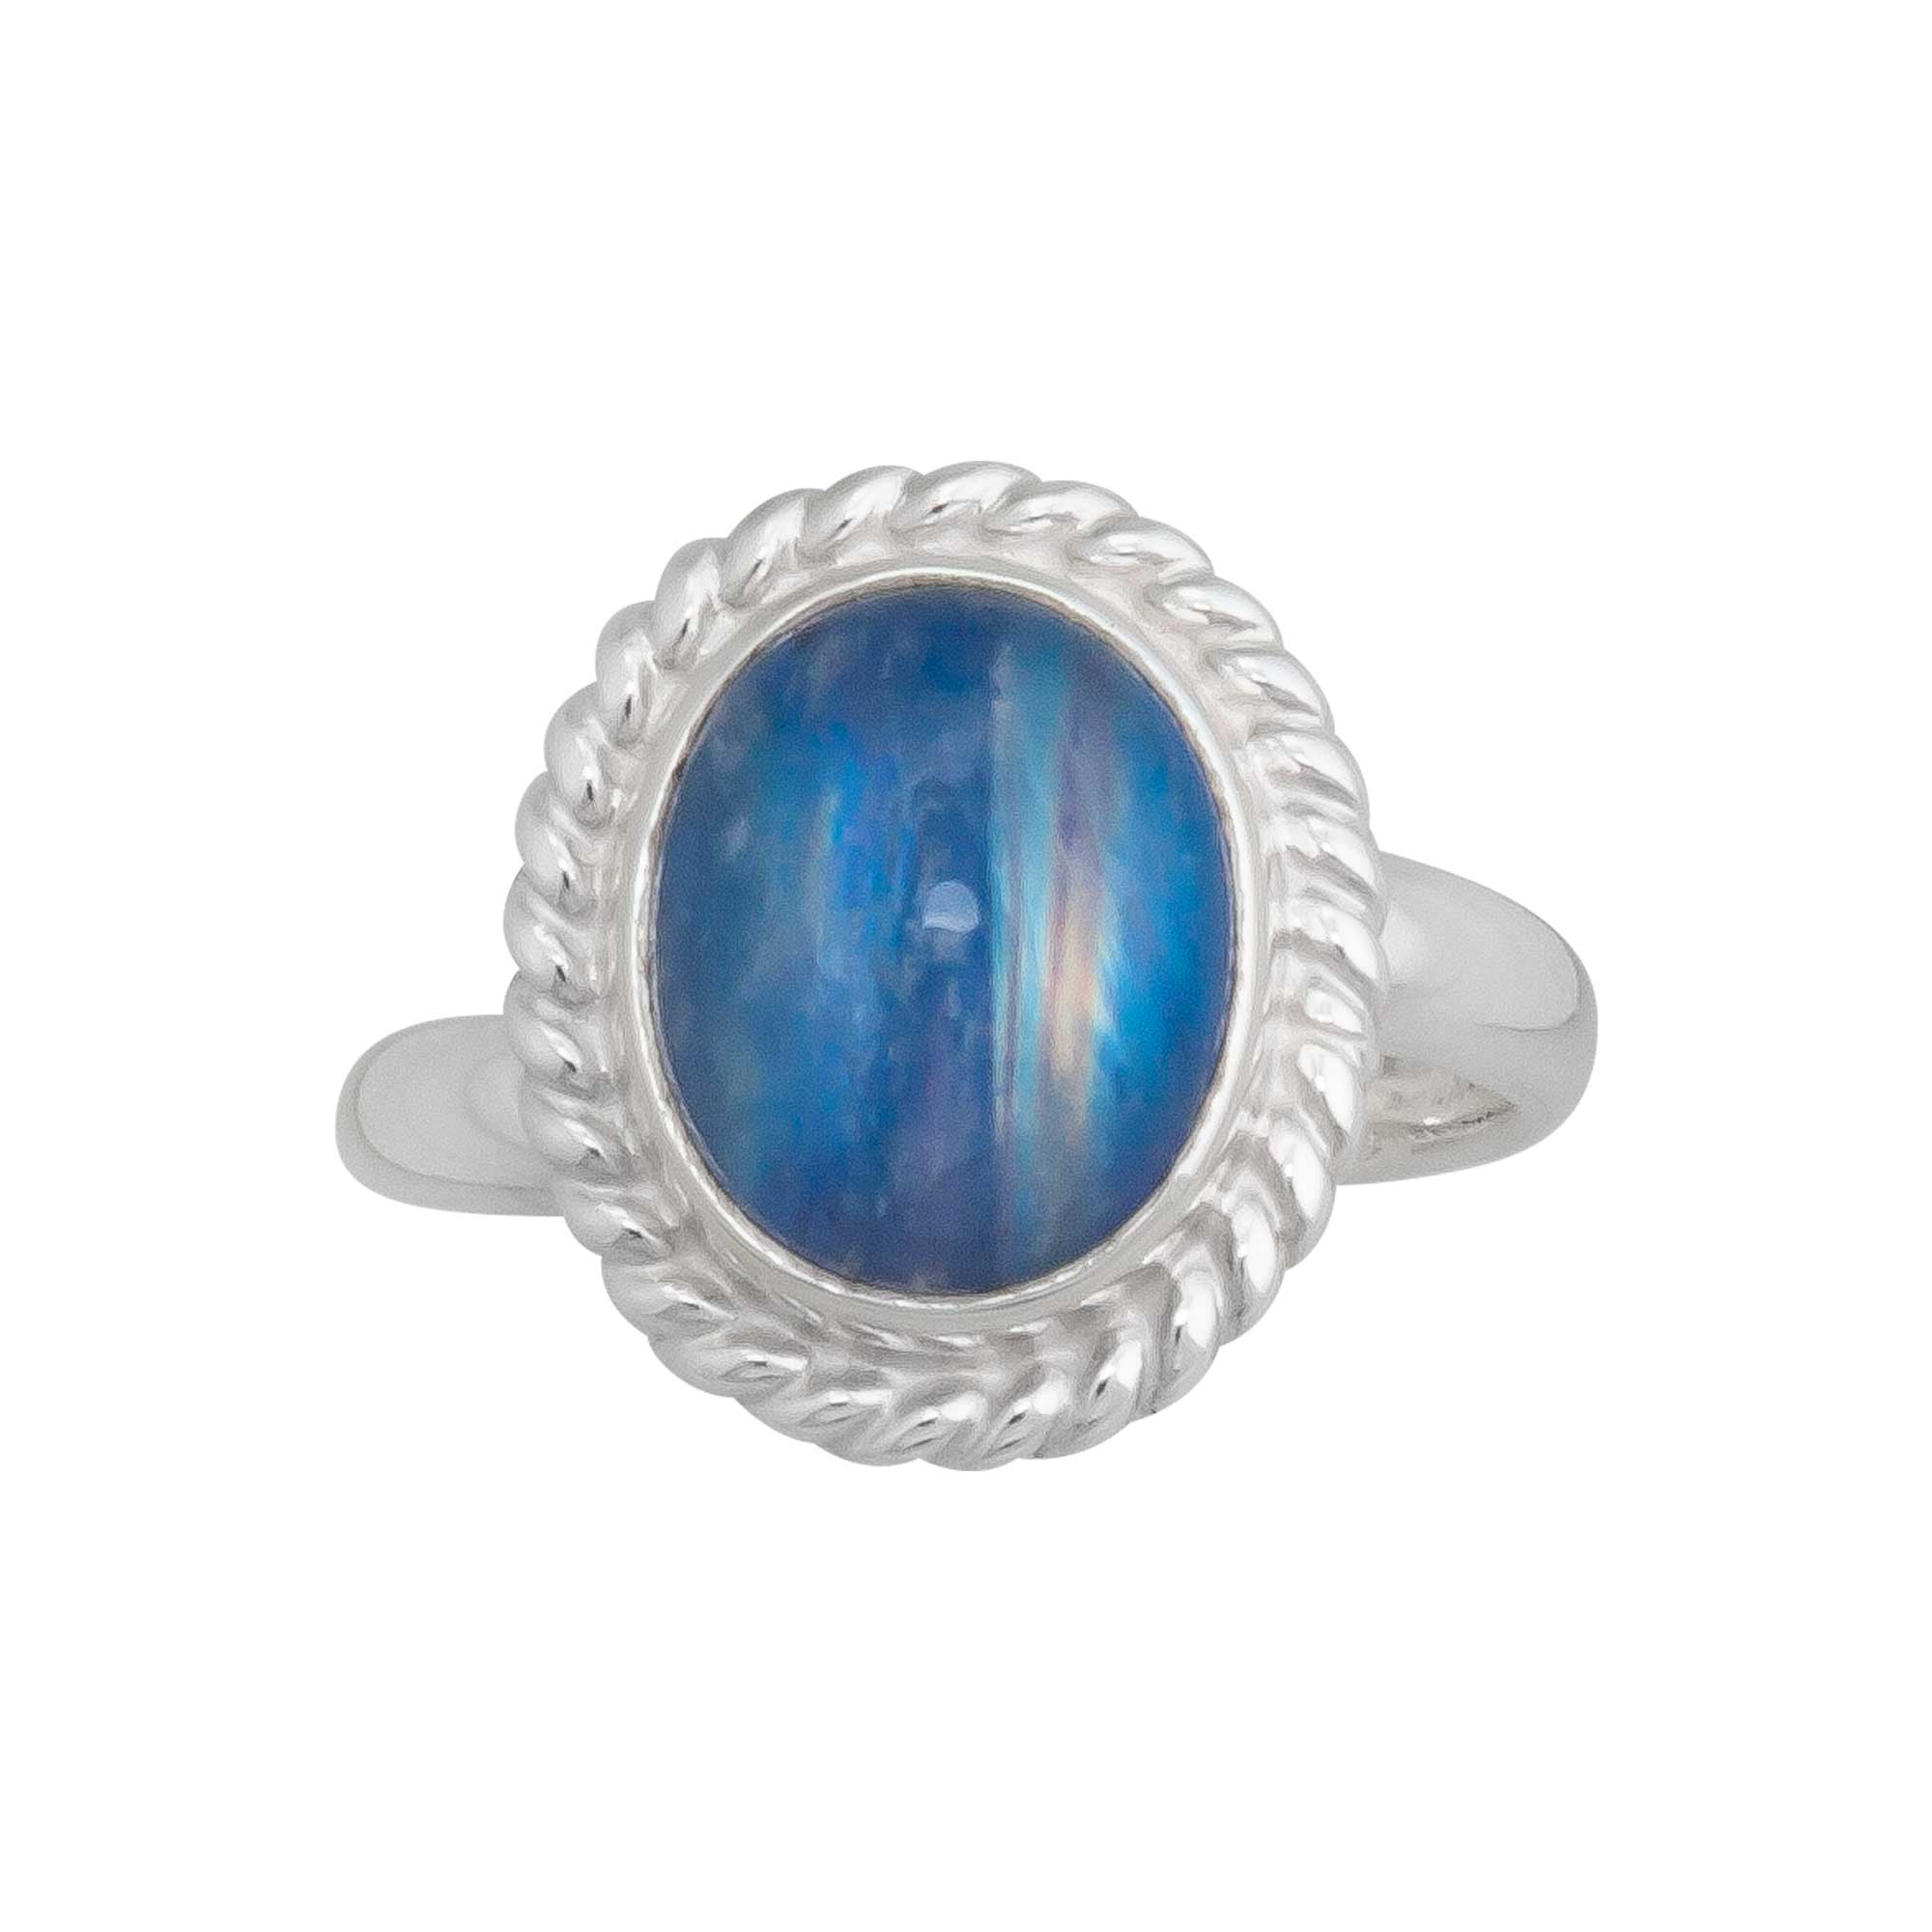 Sterling Silver Blue Rainbow Moonstone Adjustable Ring with Rope Detailed Edge | Charles Albert Jewelry